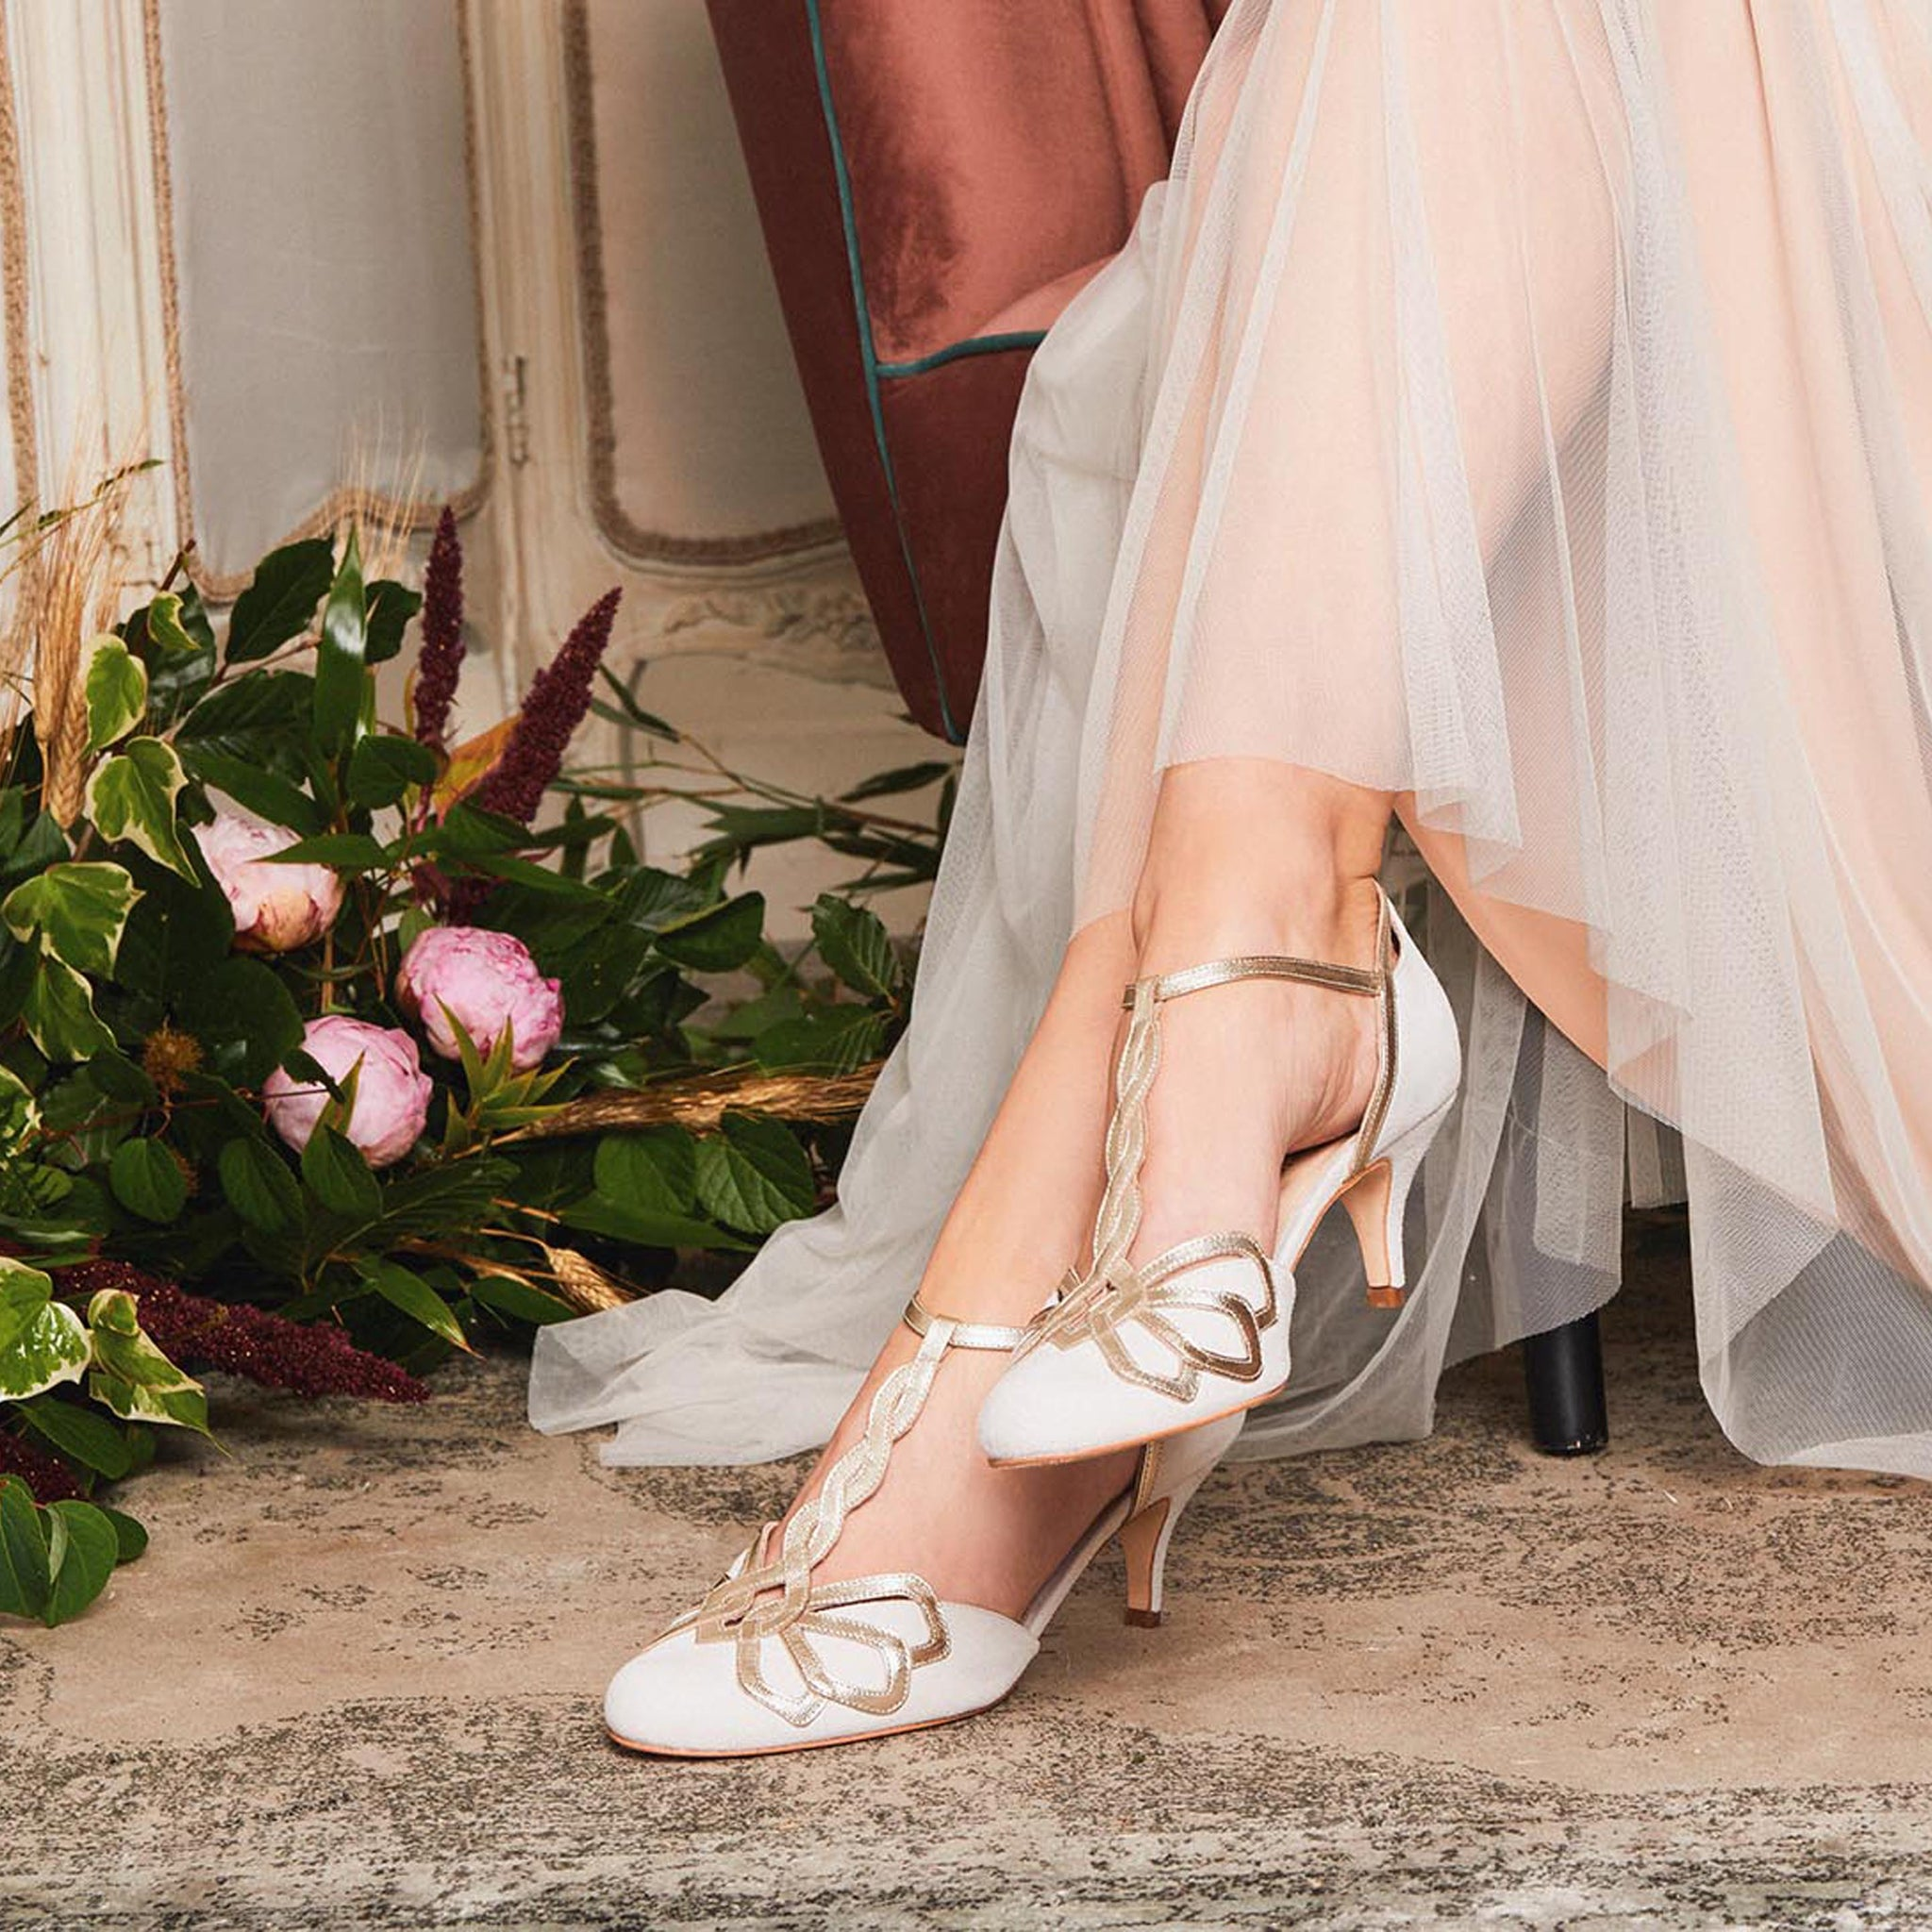 Low Heel wedding shoes you can wear all night